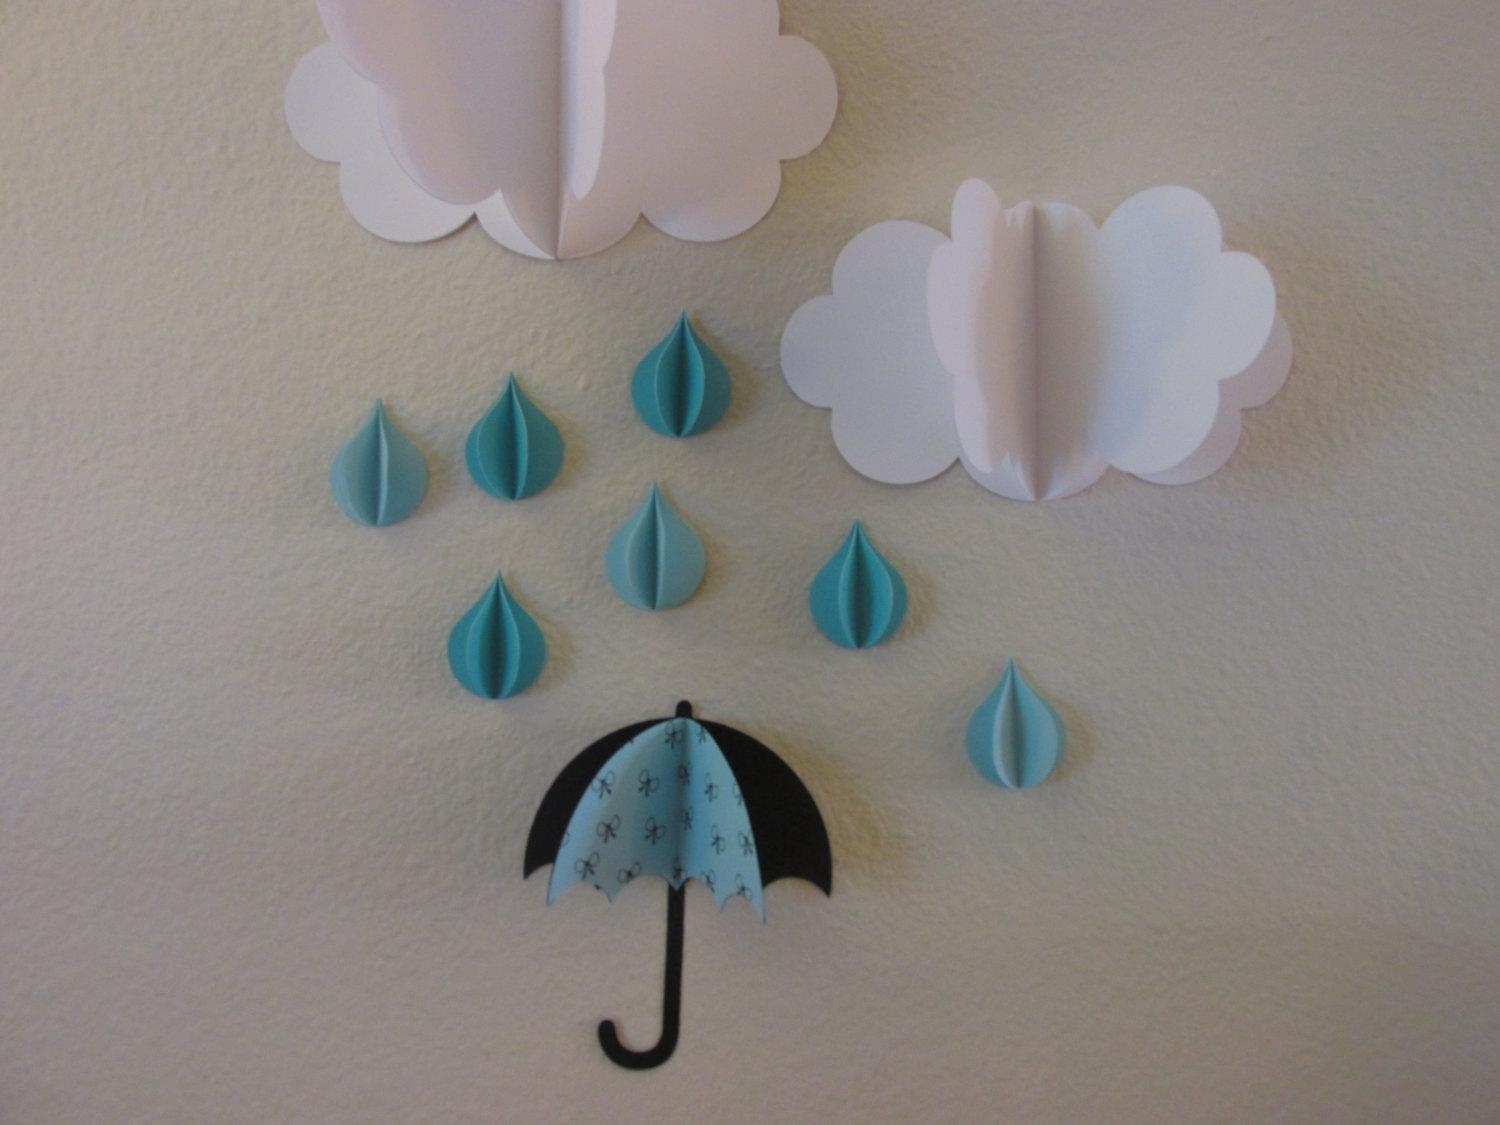 3D Wall Art 3D Baby Room Decoration Wall Art 3D Clouds Pertaining To 3D Clouds Out Of Paper Wall Art (Image 4 of 20)